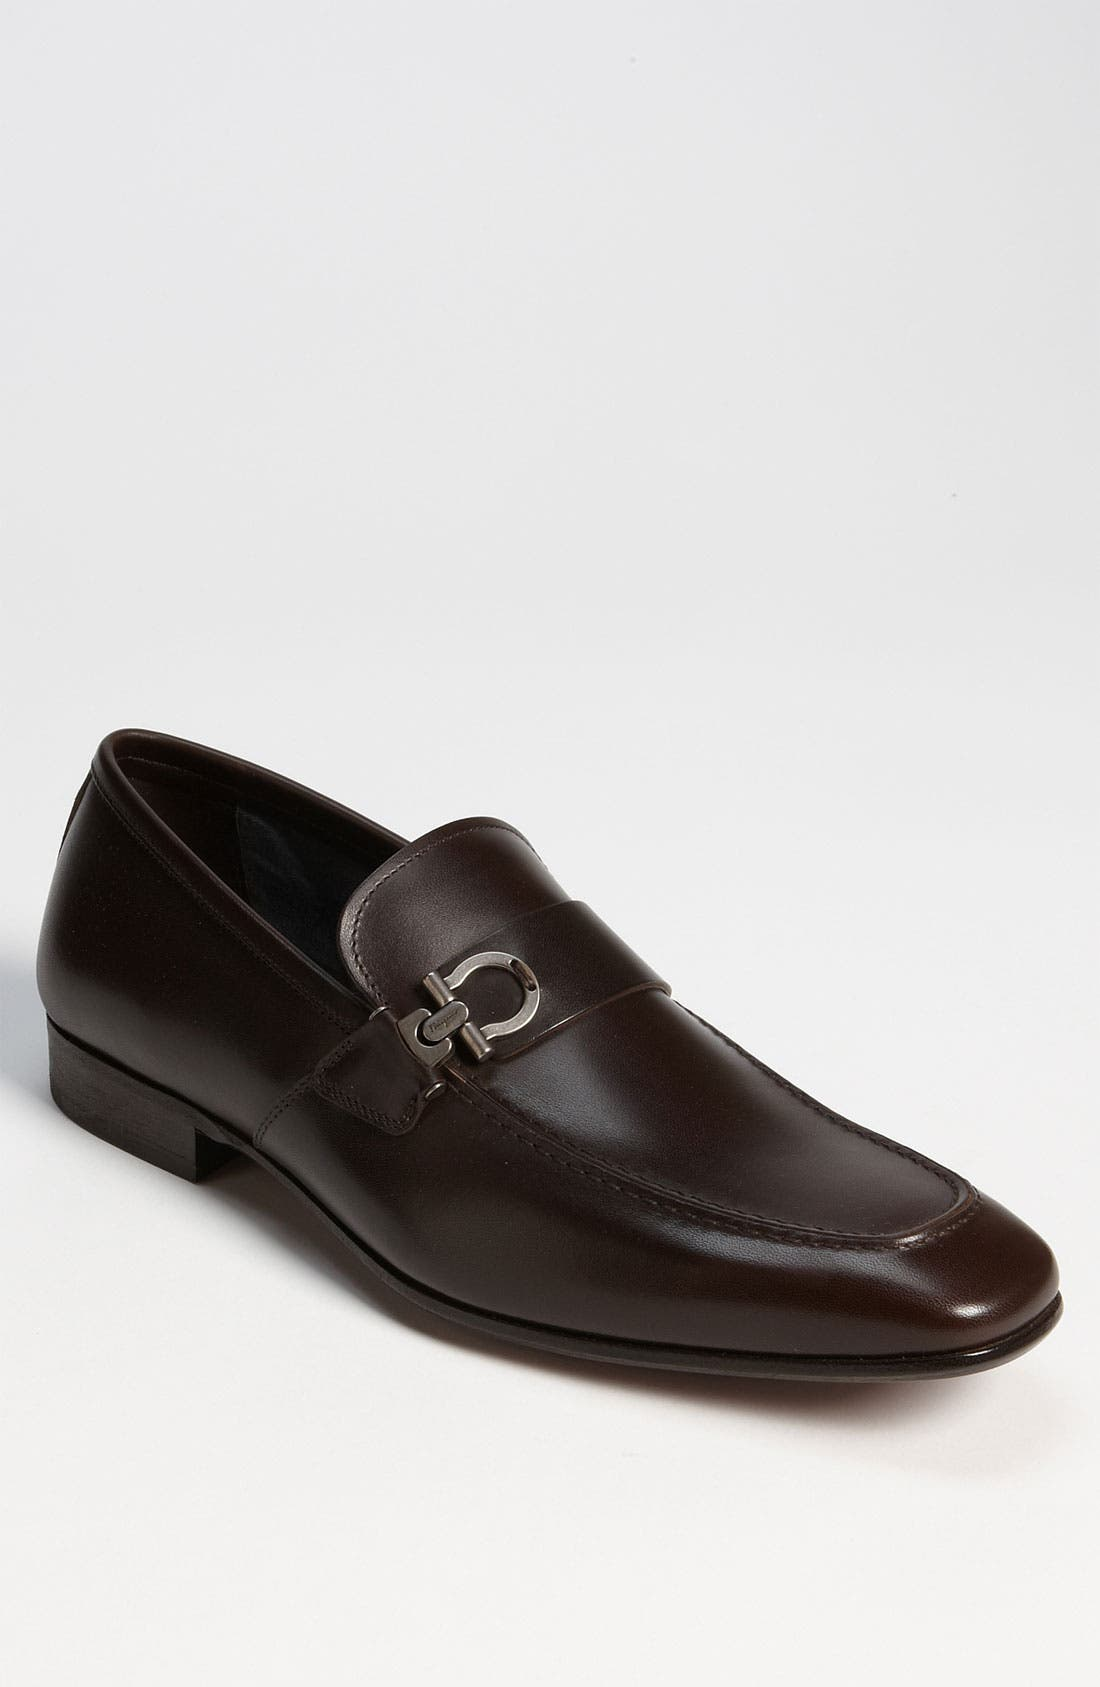 Main Image - Salvatore Ferragamo 'Bramante' Loafer